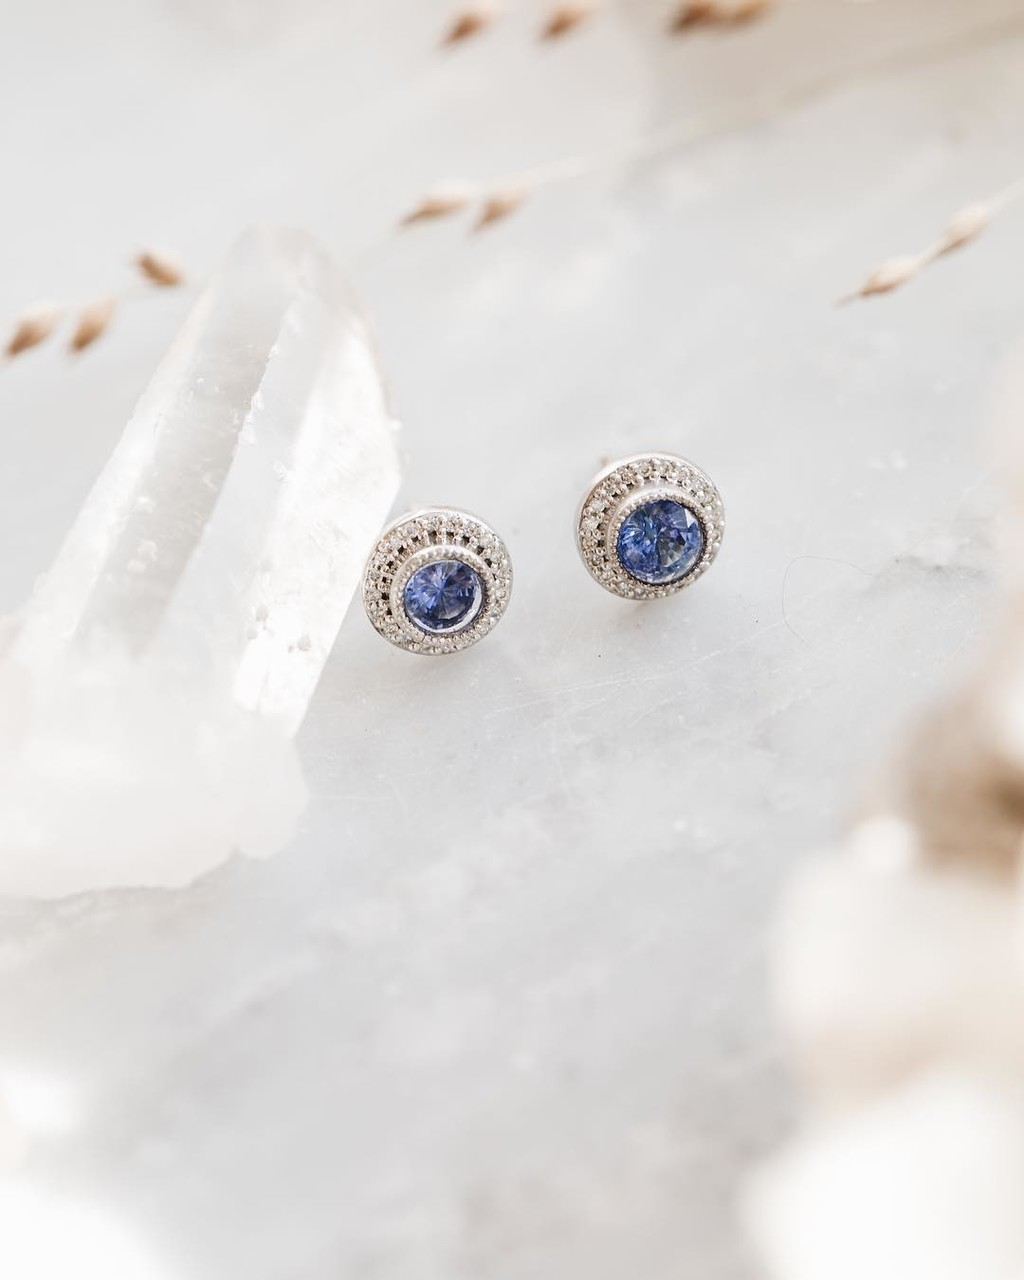 Simply stunning sapphires! 💙